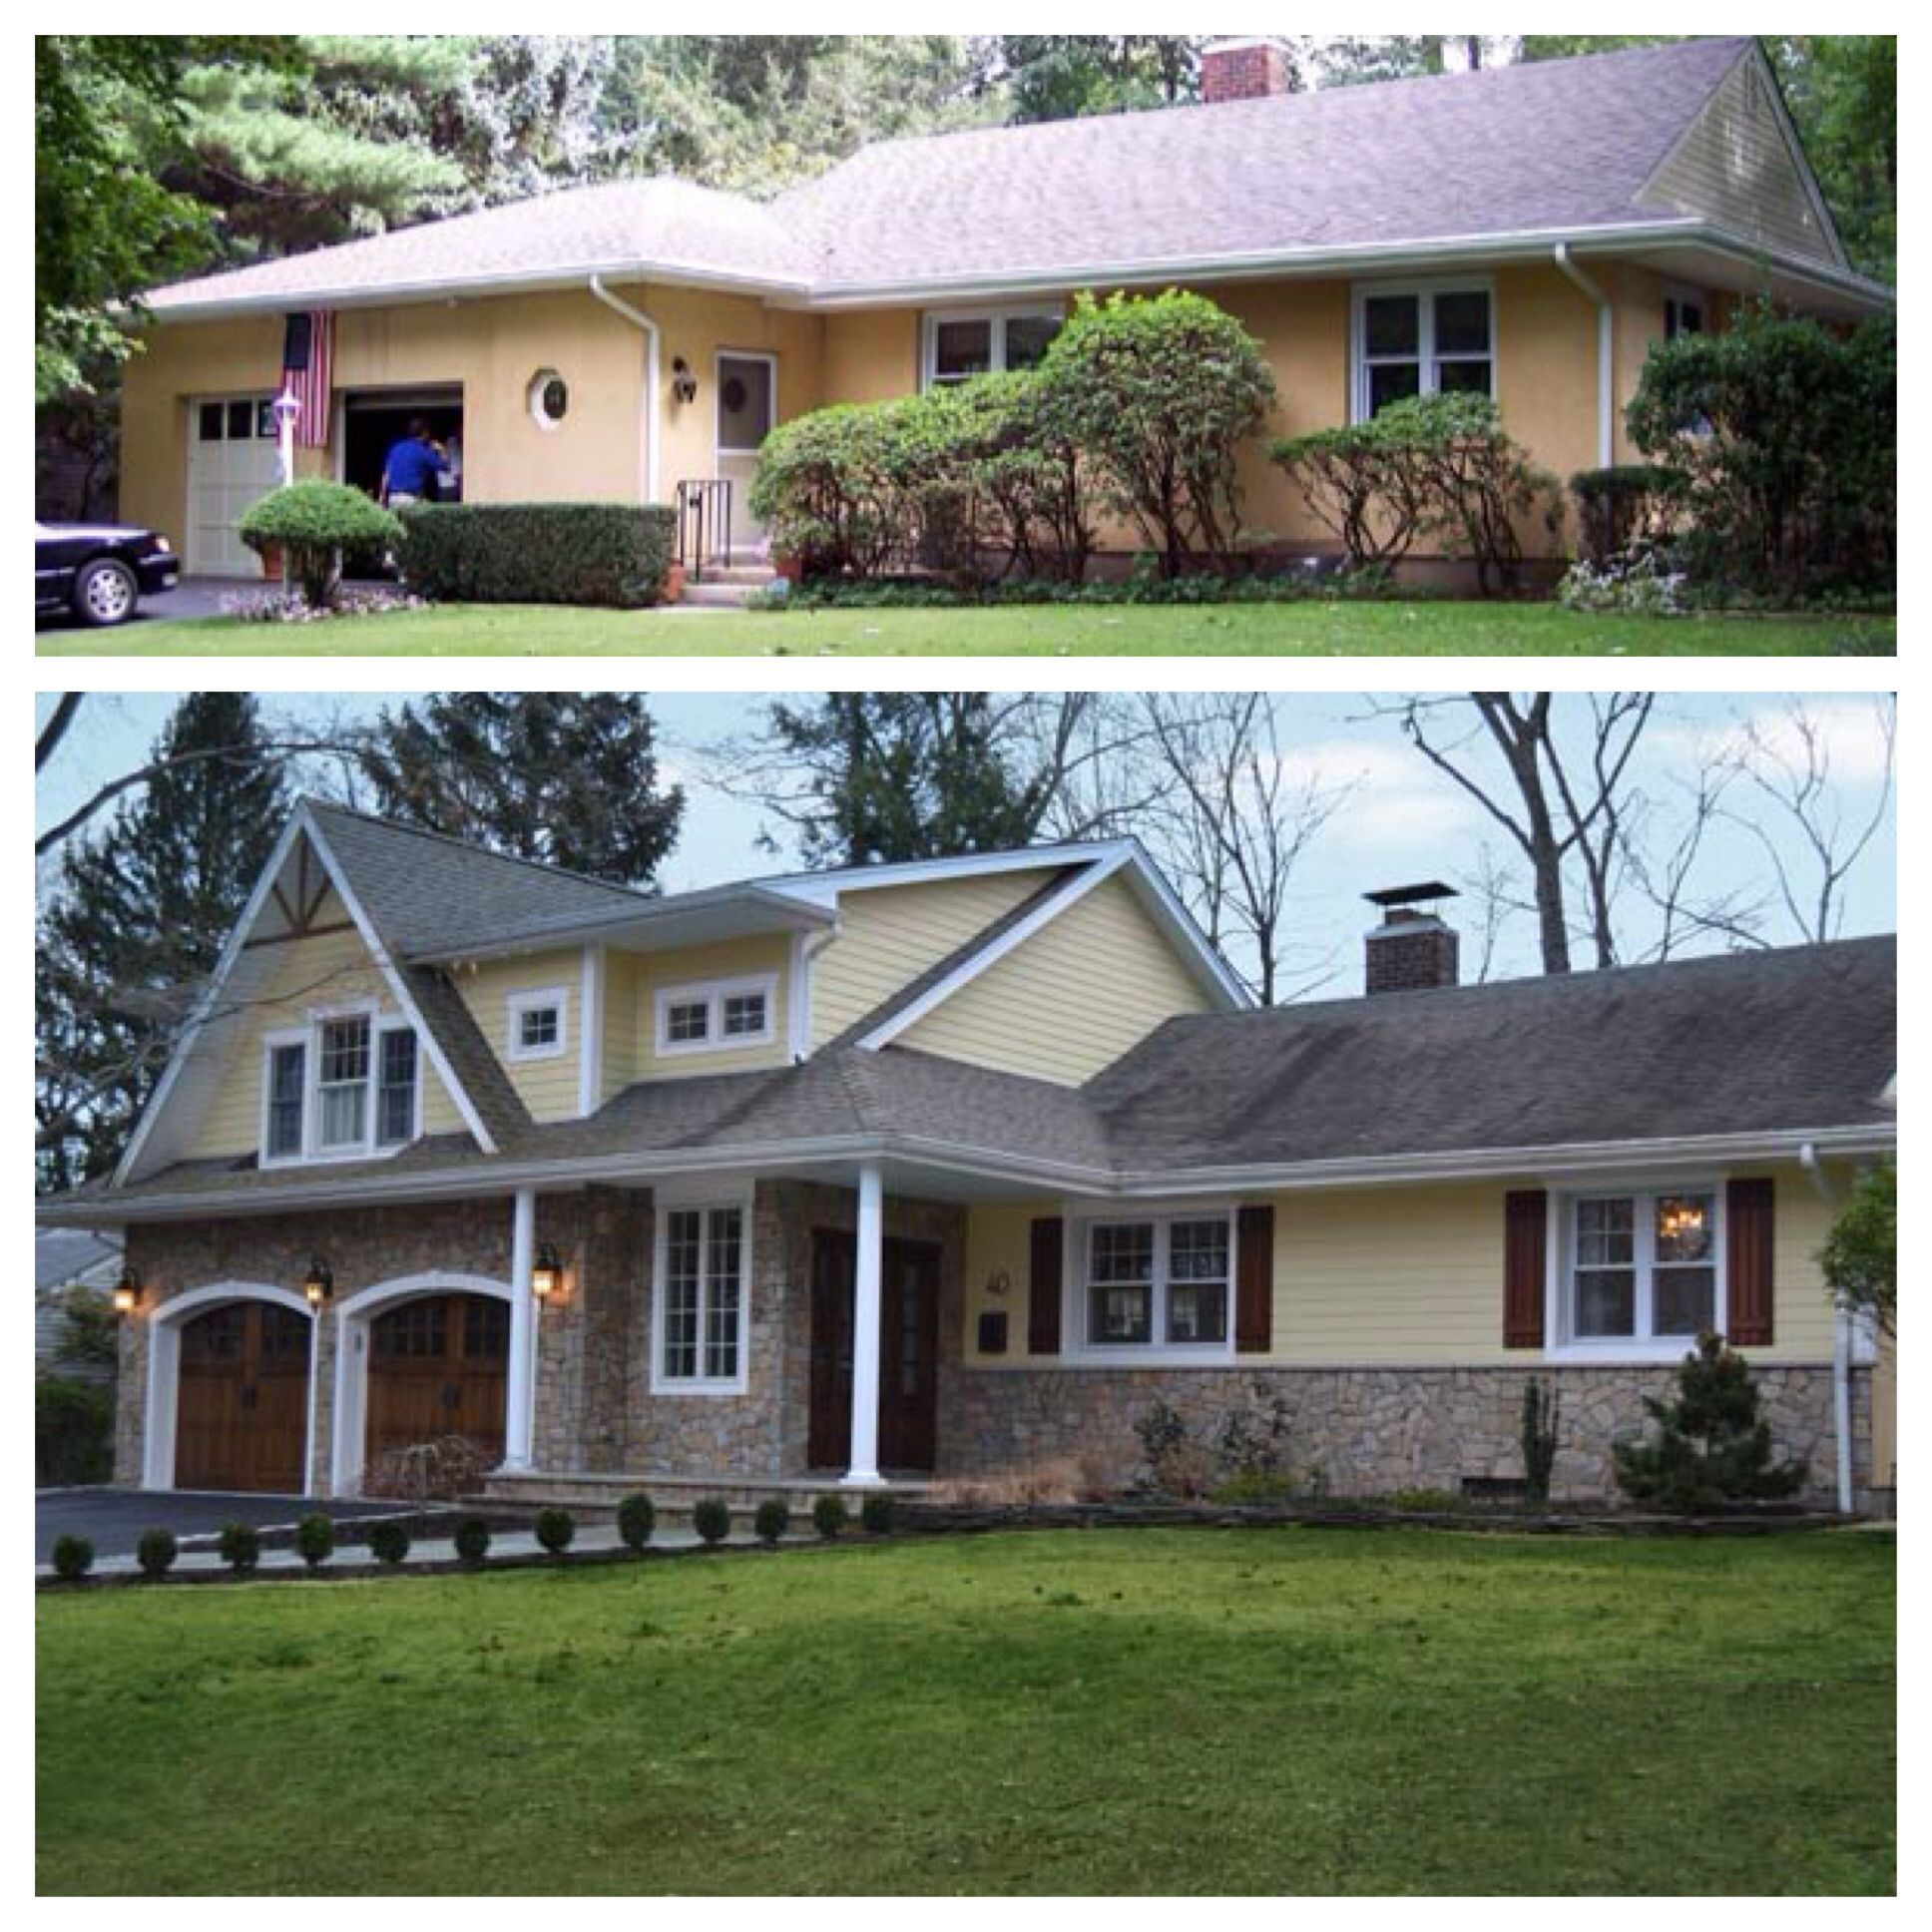 Before And After Curb Appeal Change Roofline On 1 Level House